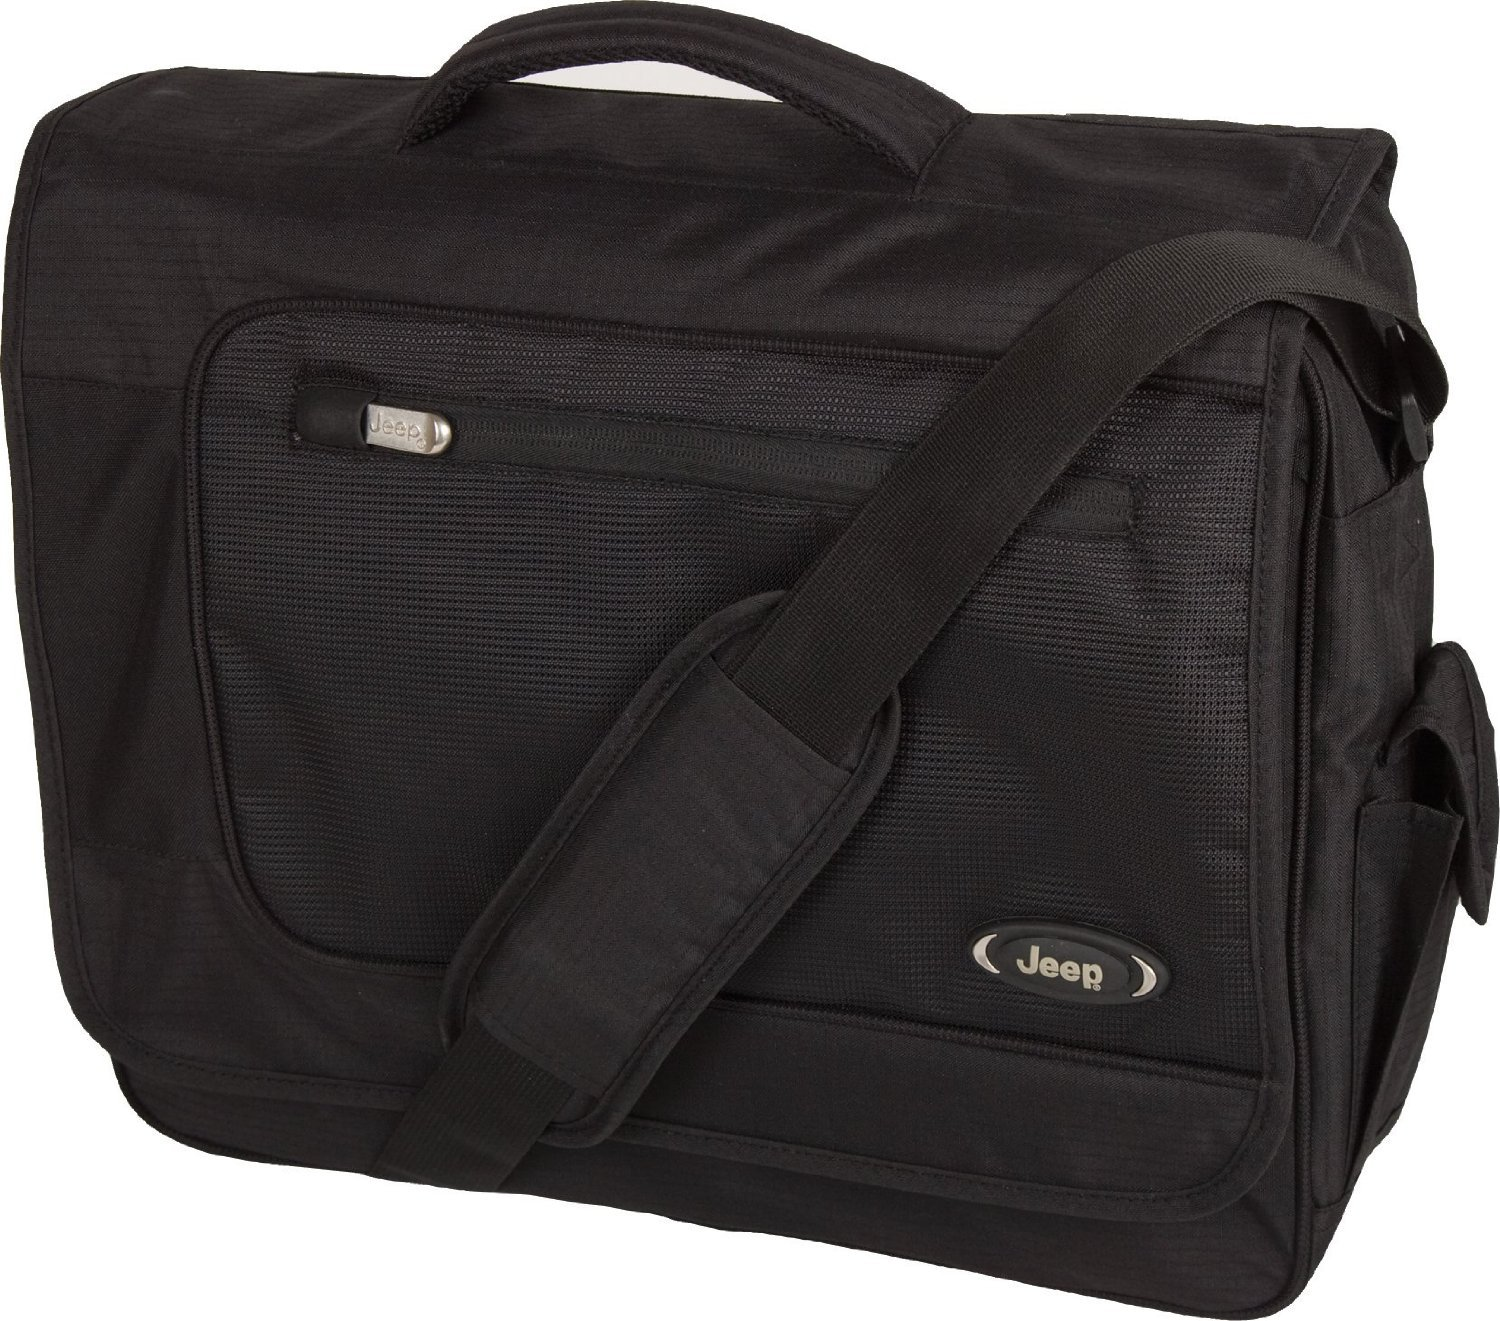 Jeep 15 Inch Laptop Notebook Carry Case  Amazon.co.uk  Computers    Accessories 172550e67f